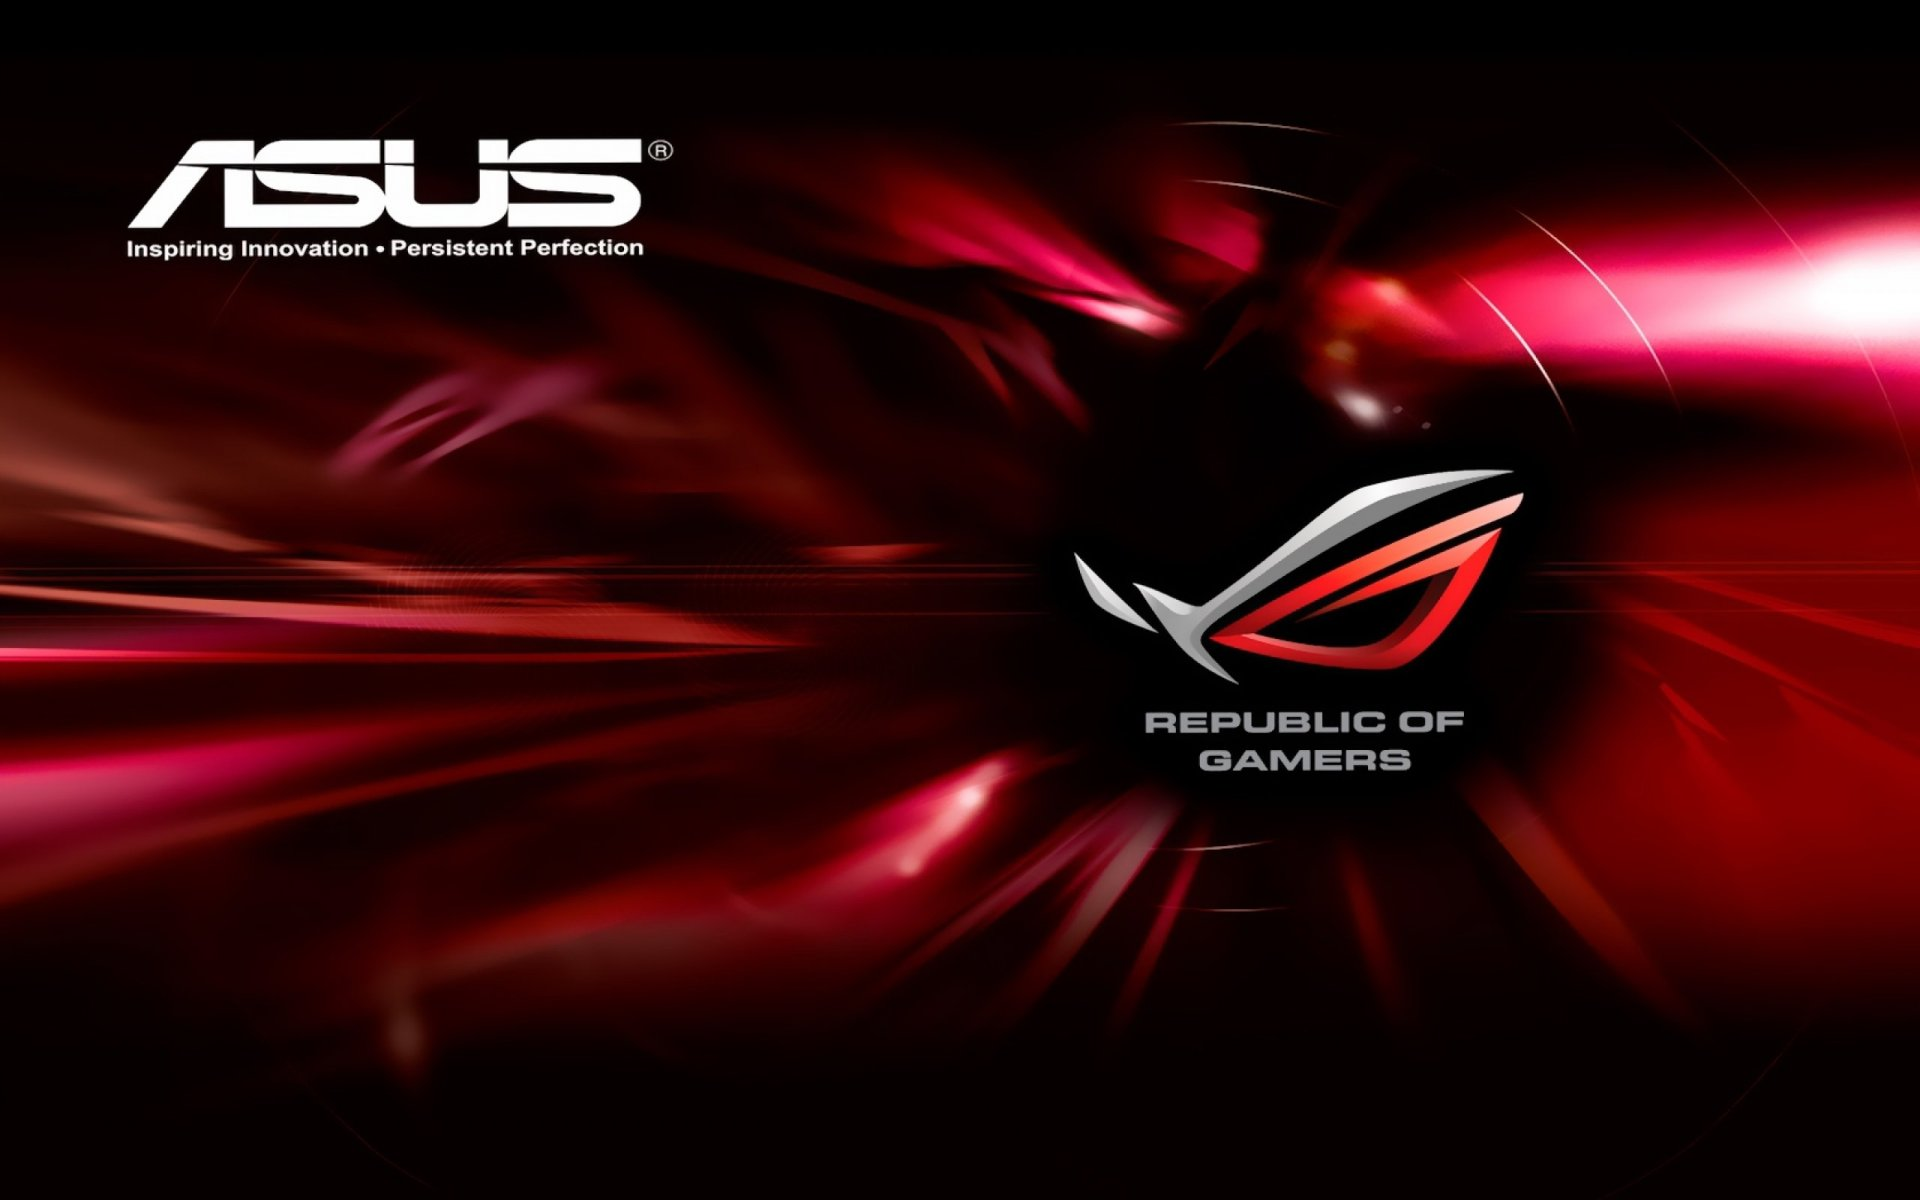 Cool Iphone 4 Wallpapers Hd Asus Hd Wallpaper Background Image 1920x1200 Id